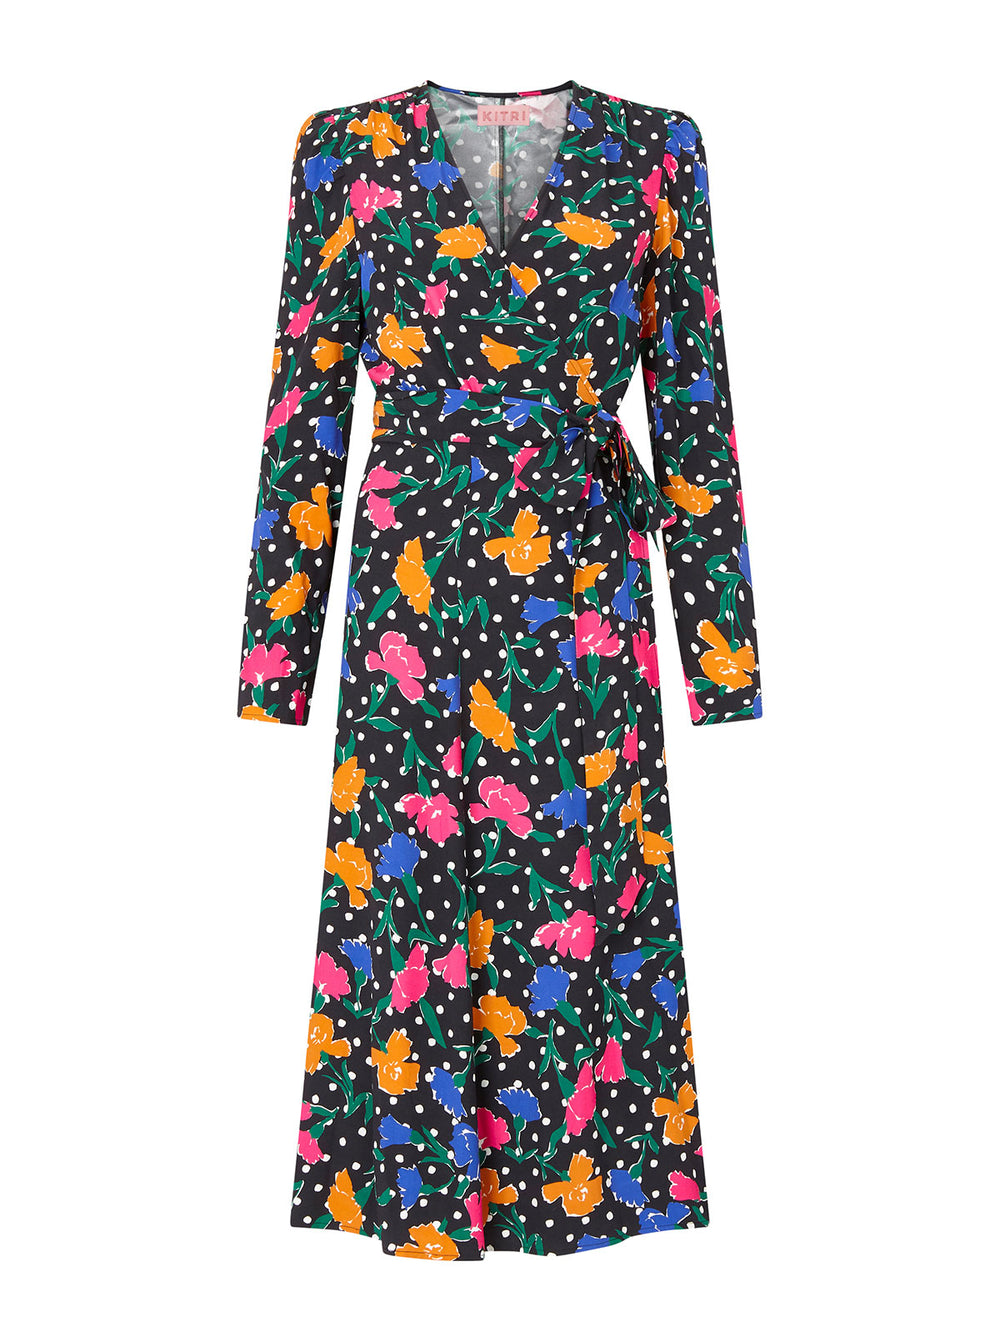 Stephanie Floral Polka Dot Wrap Dress